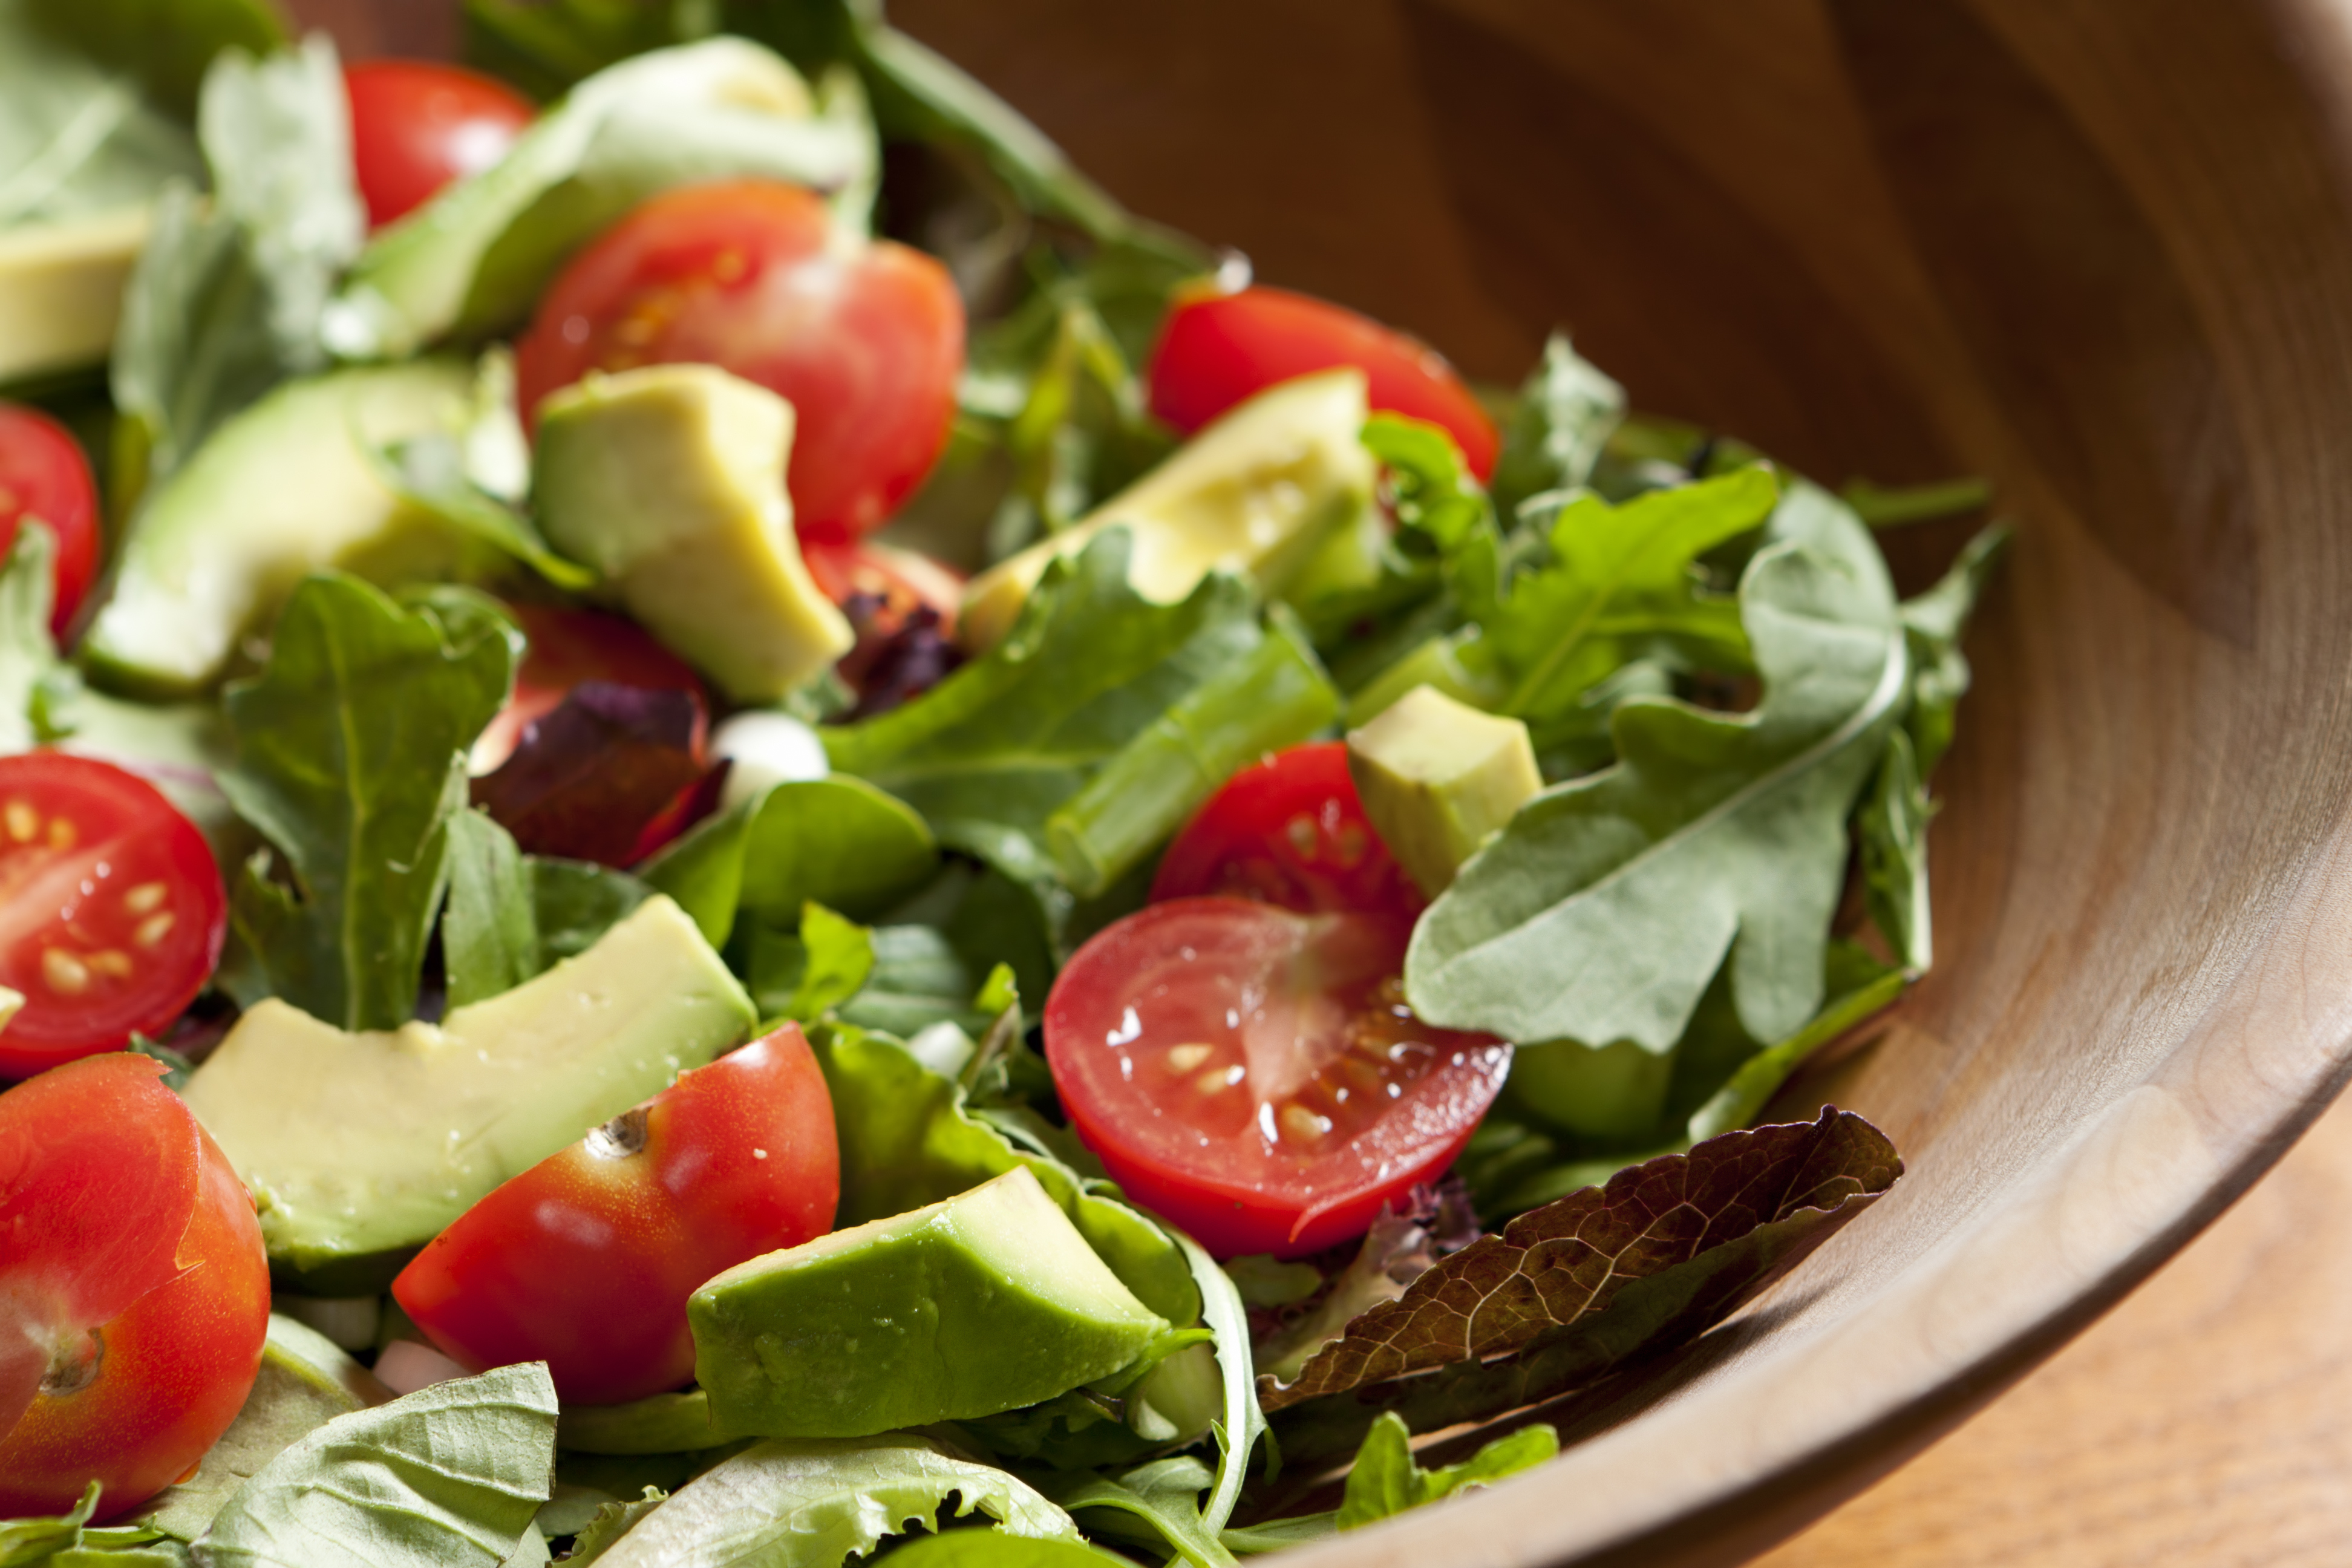 Fresh salad with cherry tomatoes, avocado and mixed greens